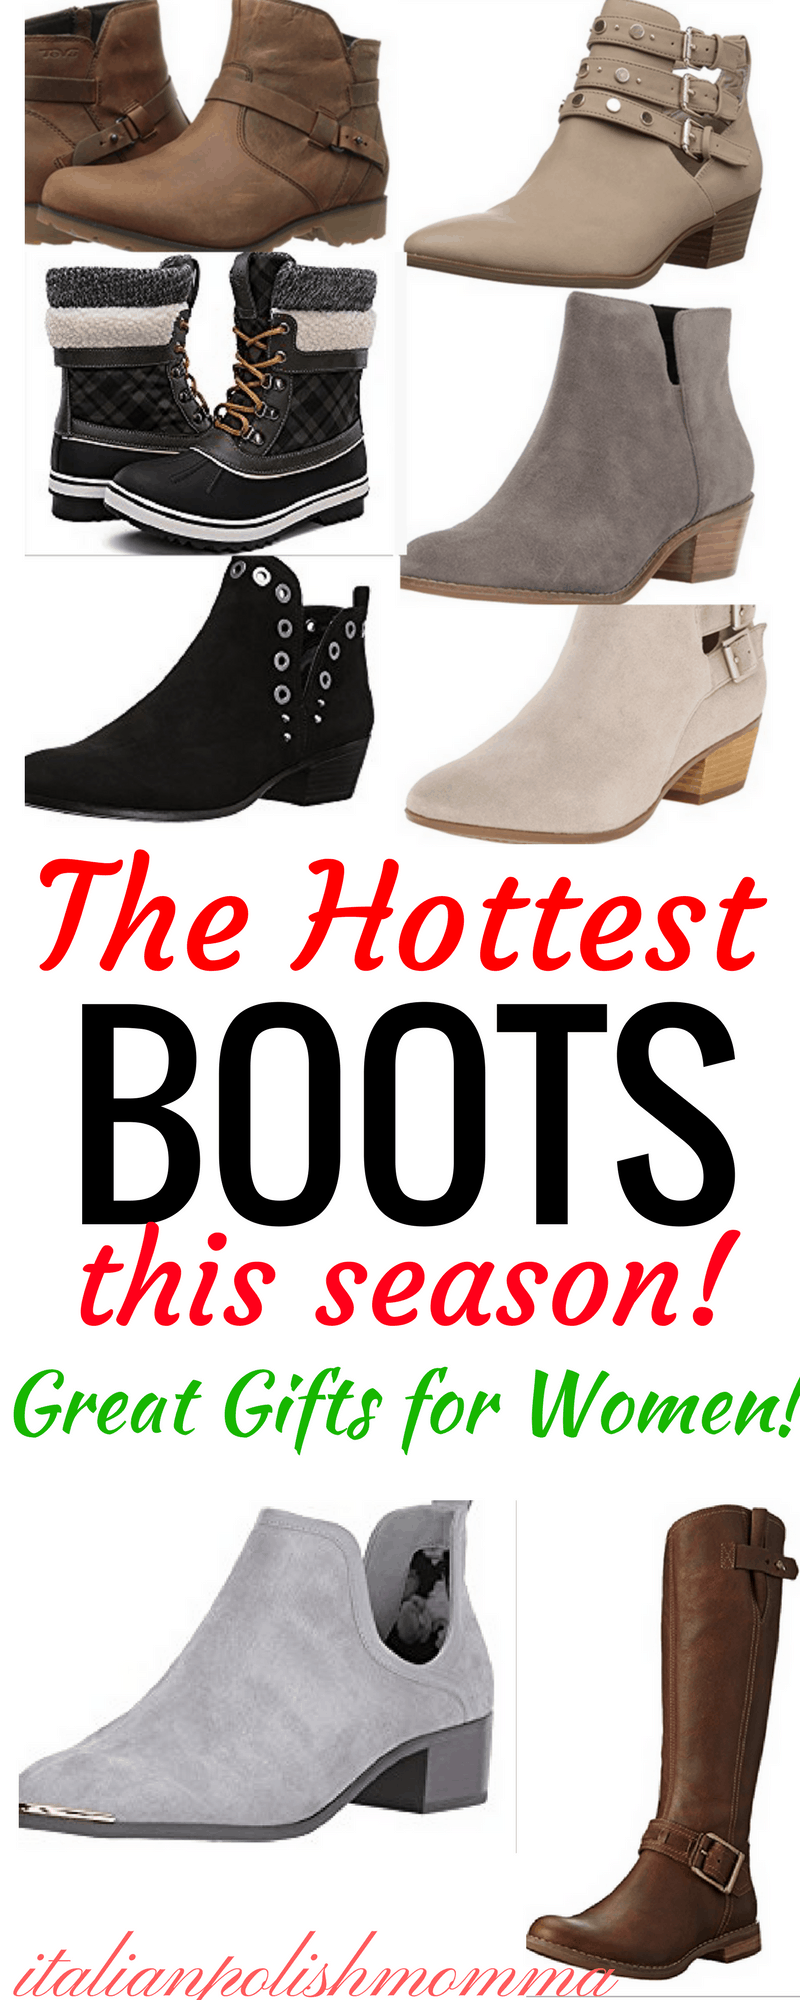 Hottest Boots This Season!